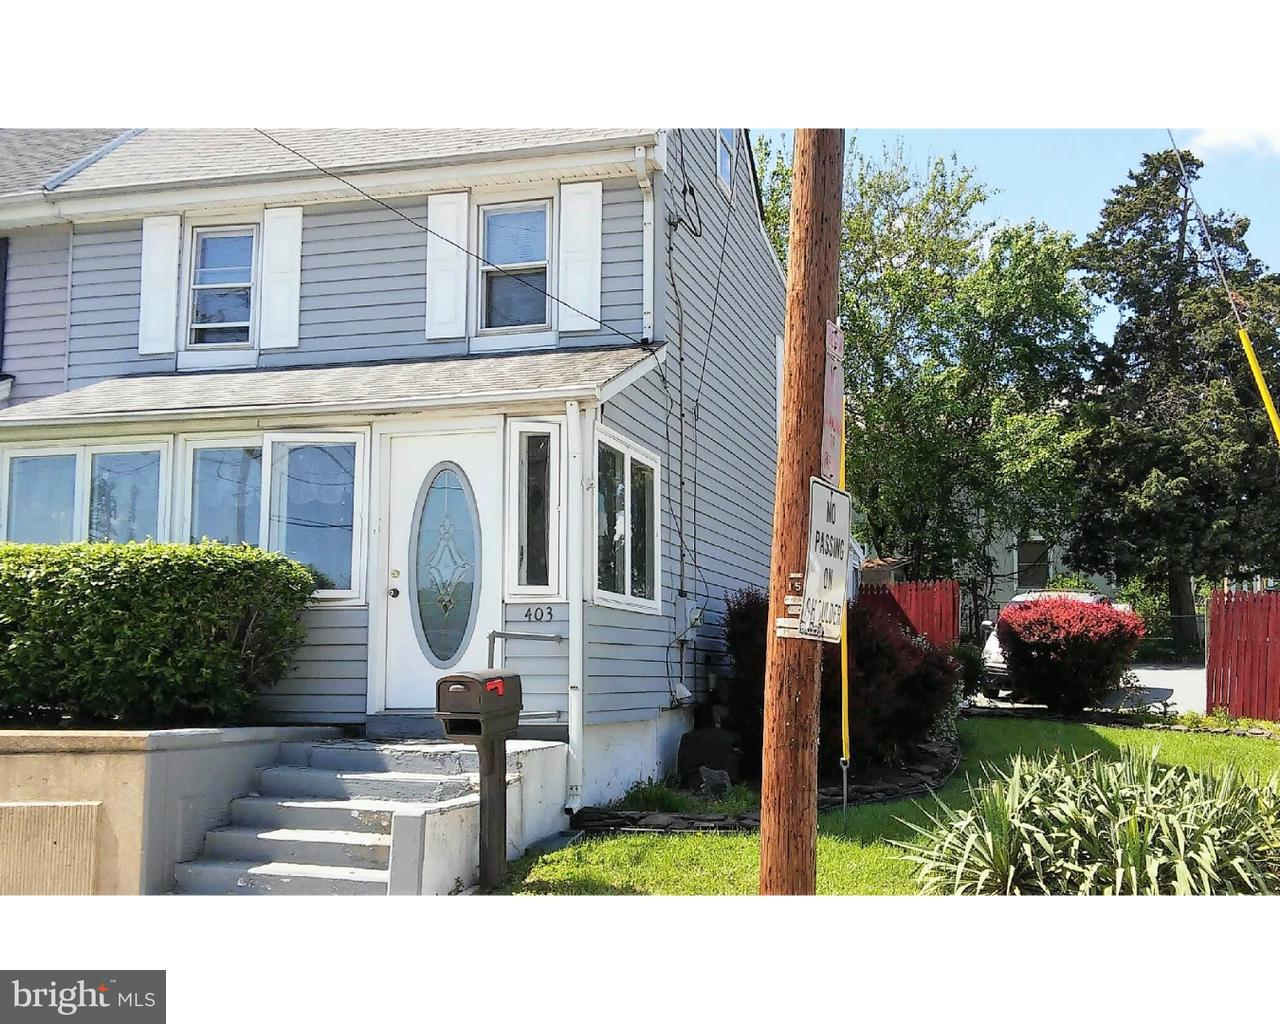 Single Family Home for Sale at 403 MAIN Street Stanton, Delaware 19804 United States